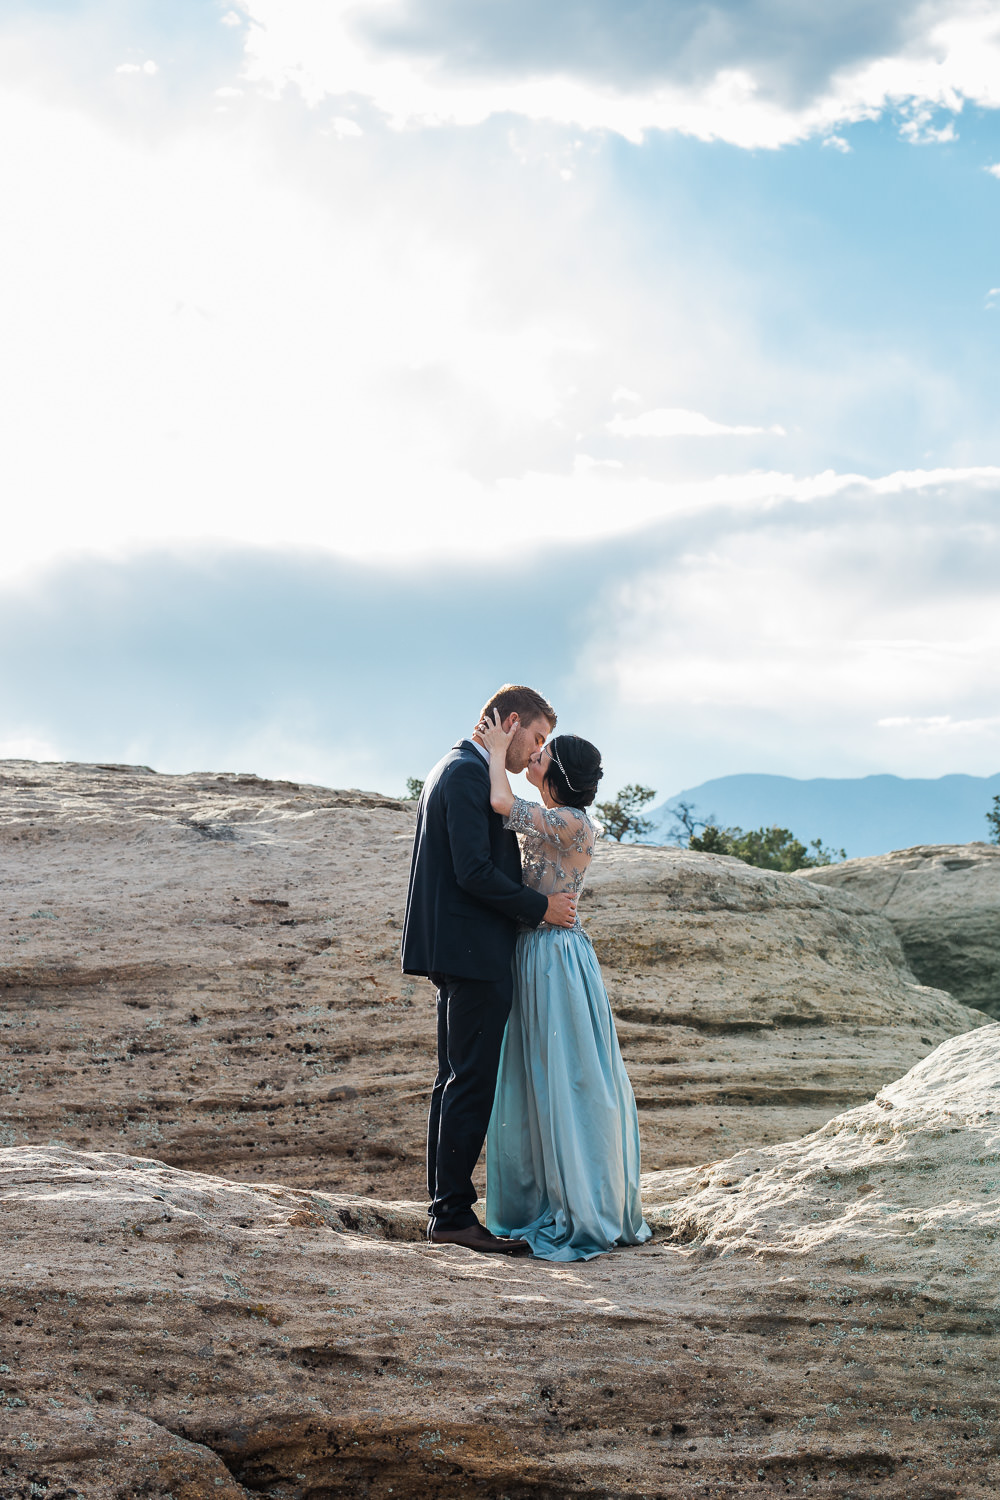 KyleLovesTori-Zion-National-Park-Adventure-Bridals-4.jpg